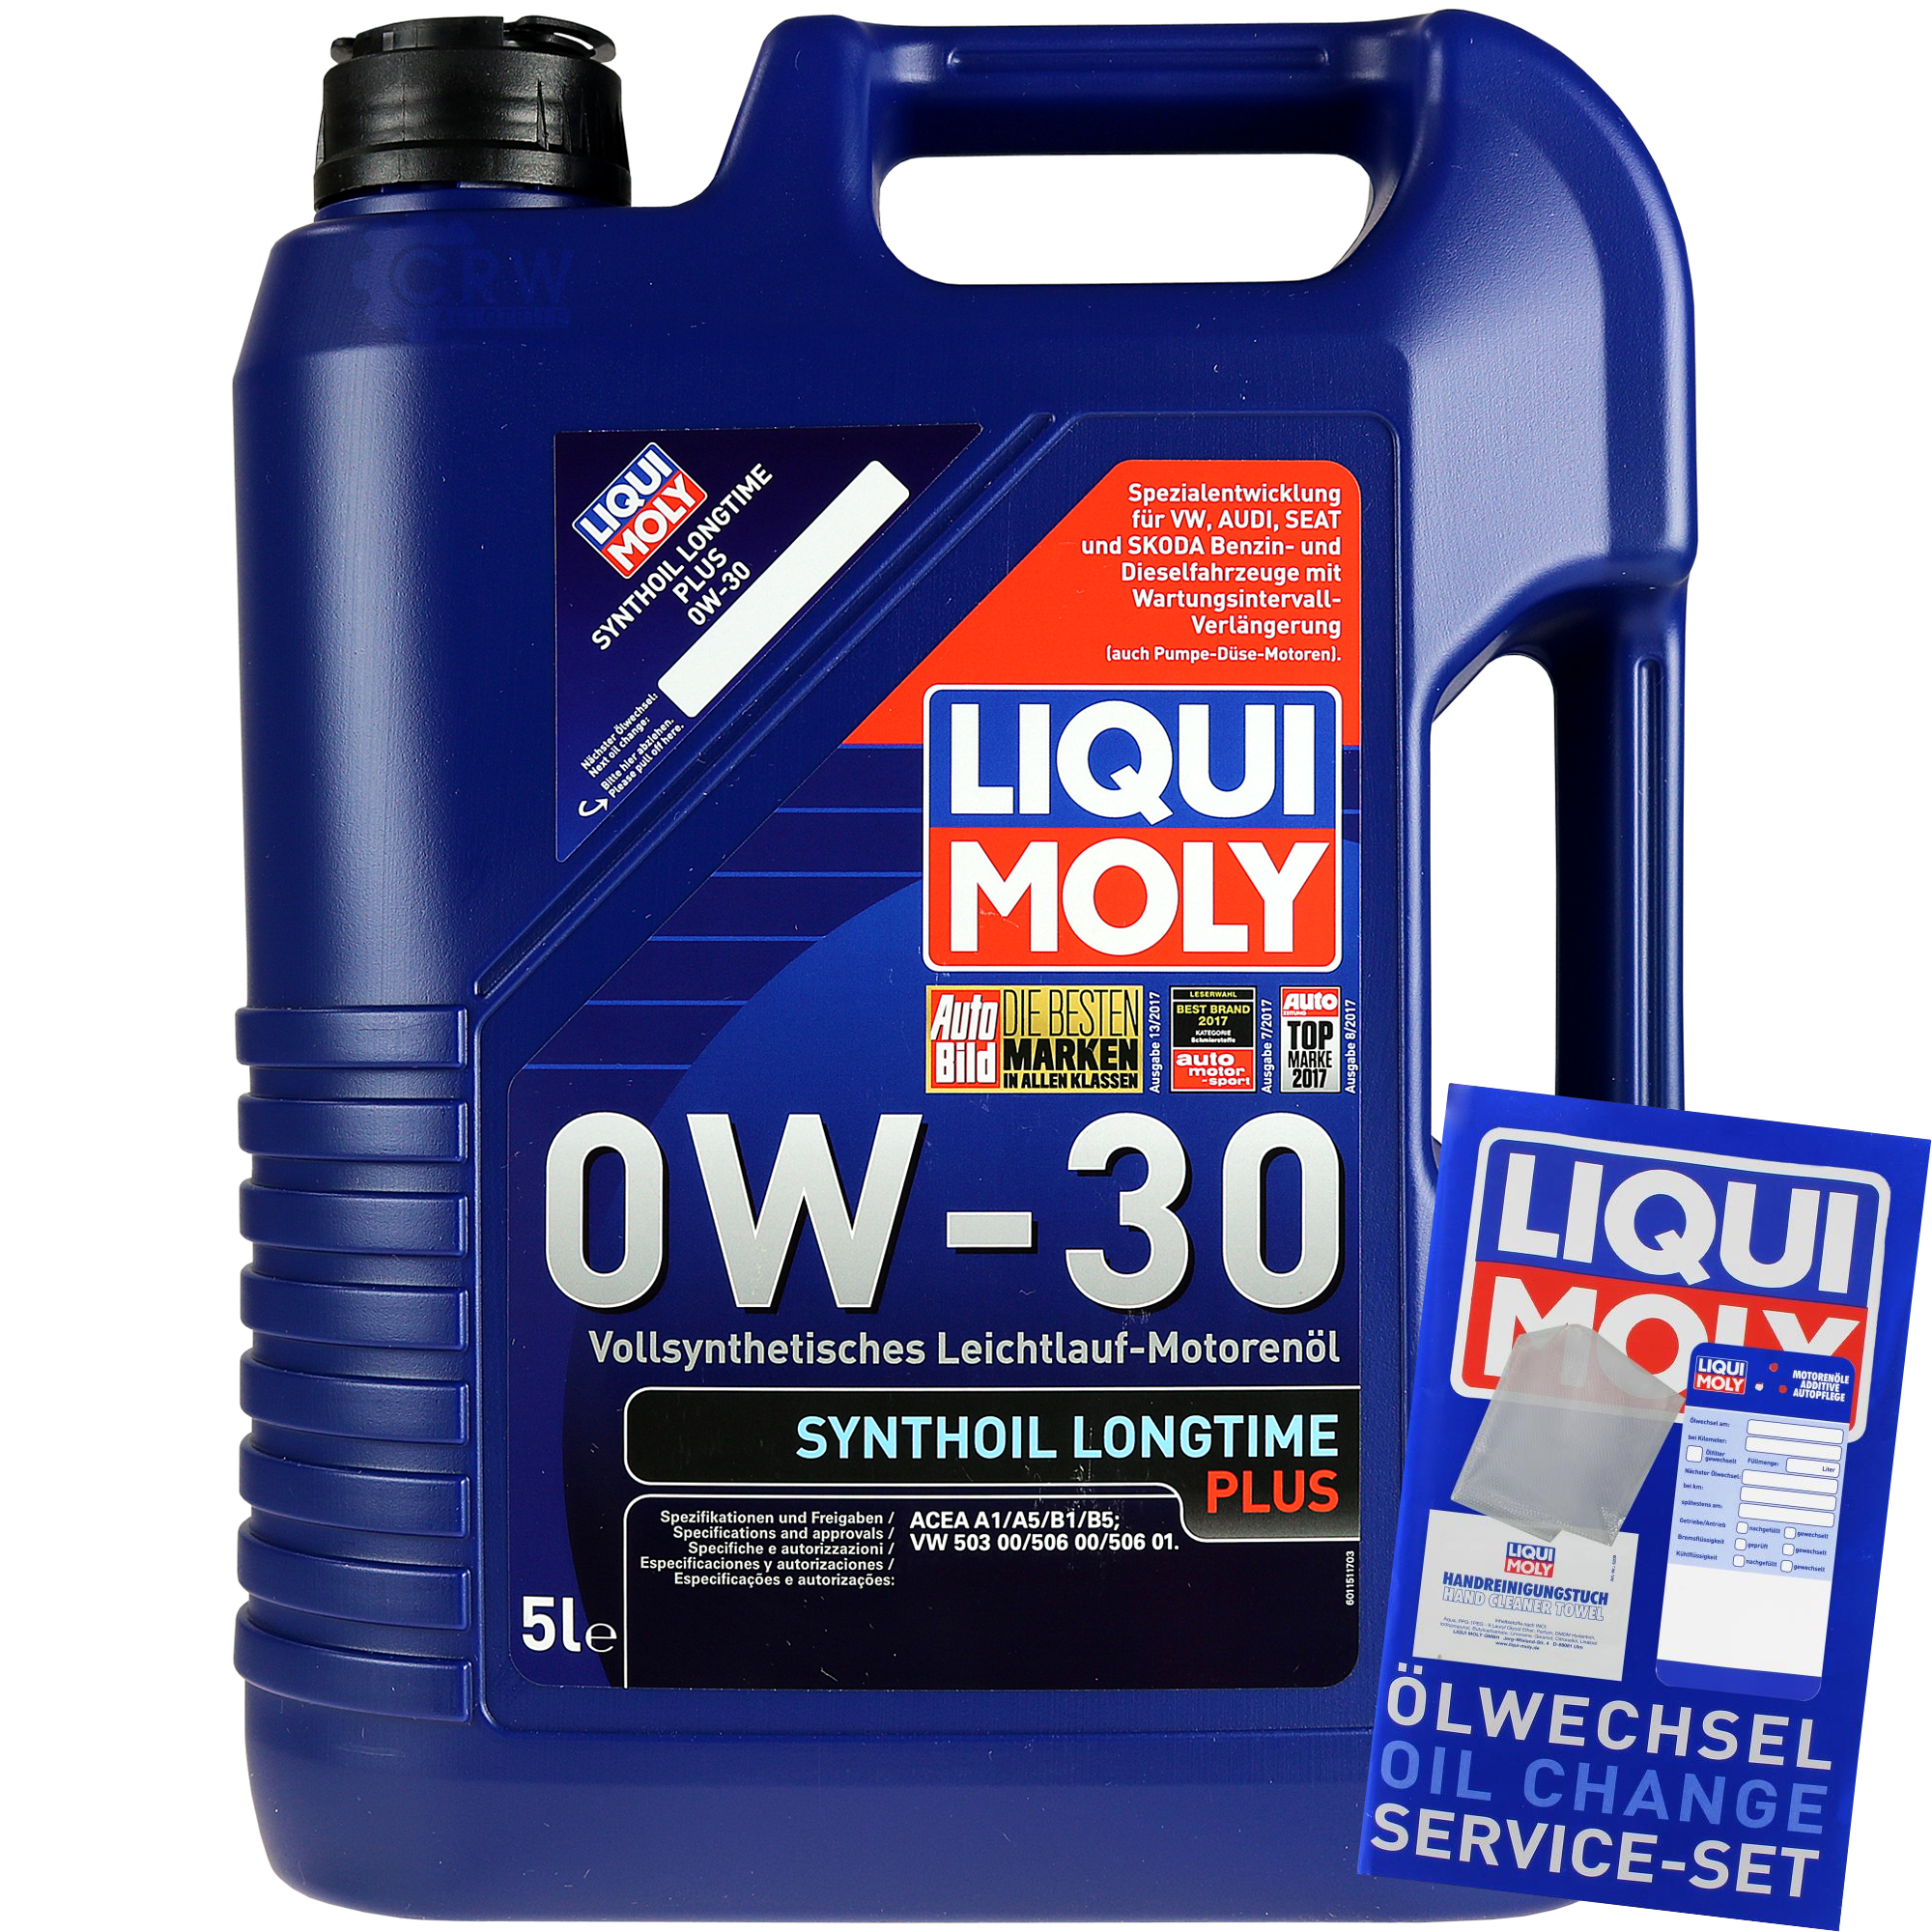 5 liter original liqui moly synthoil longtime plus 0w 30. Black Bedroom Furniture Sets. Home Design Ideas